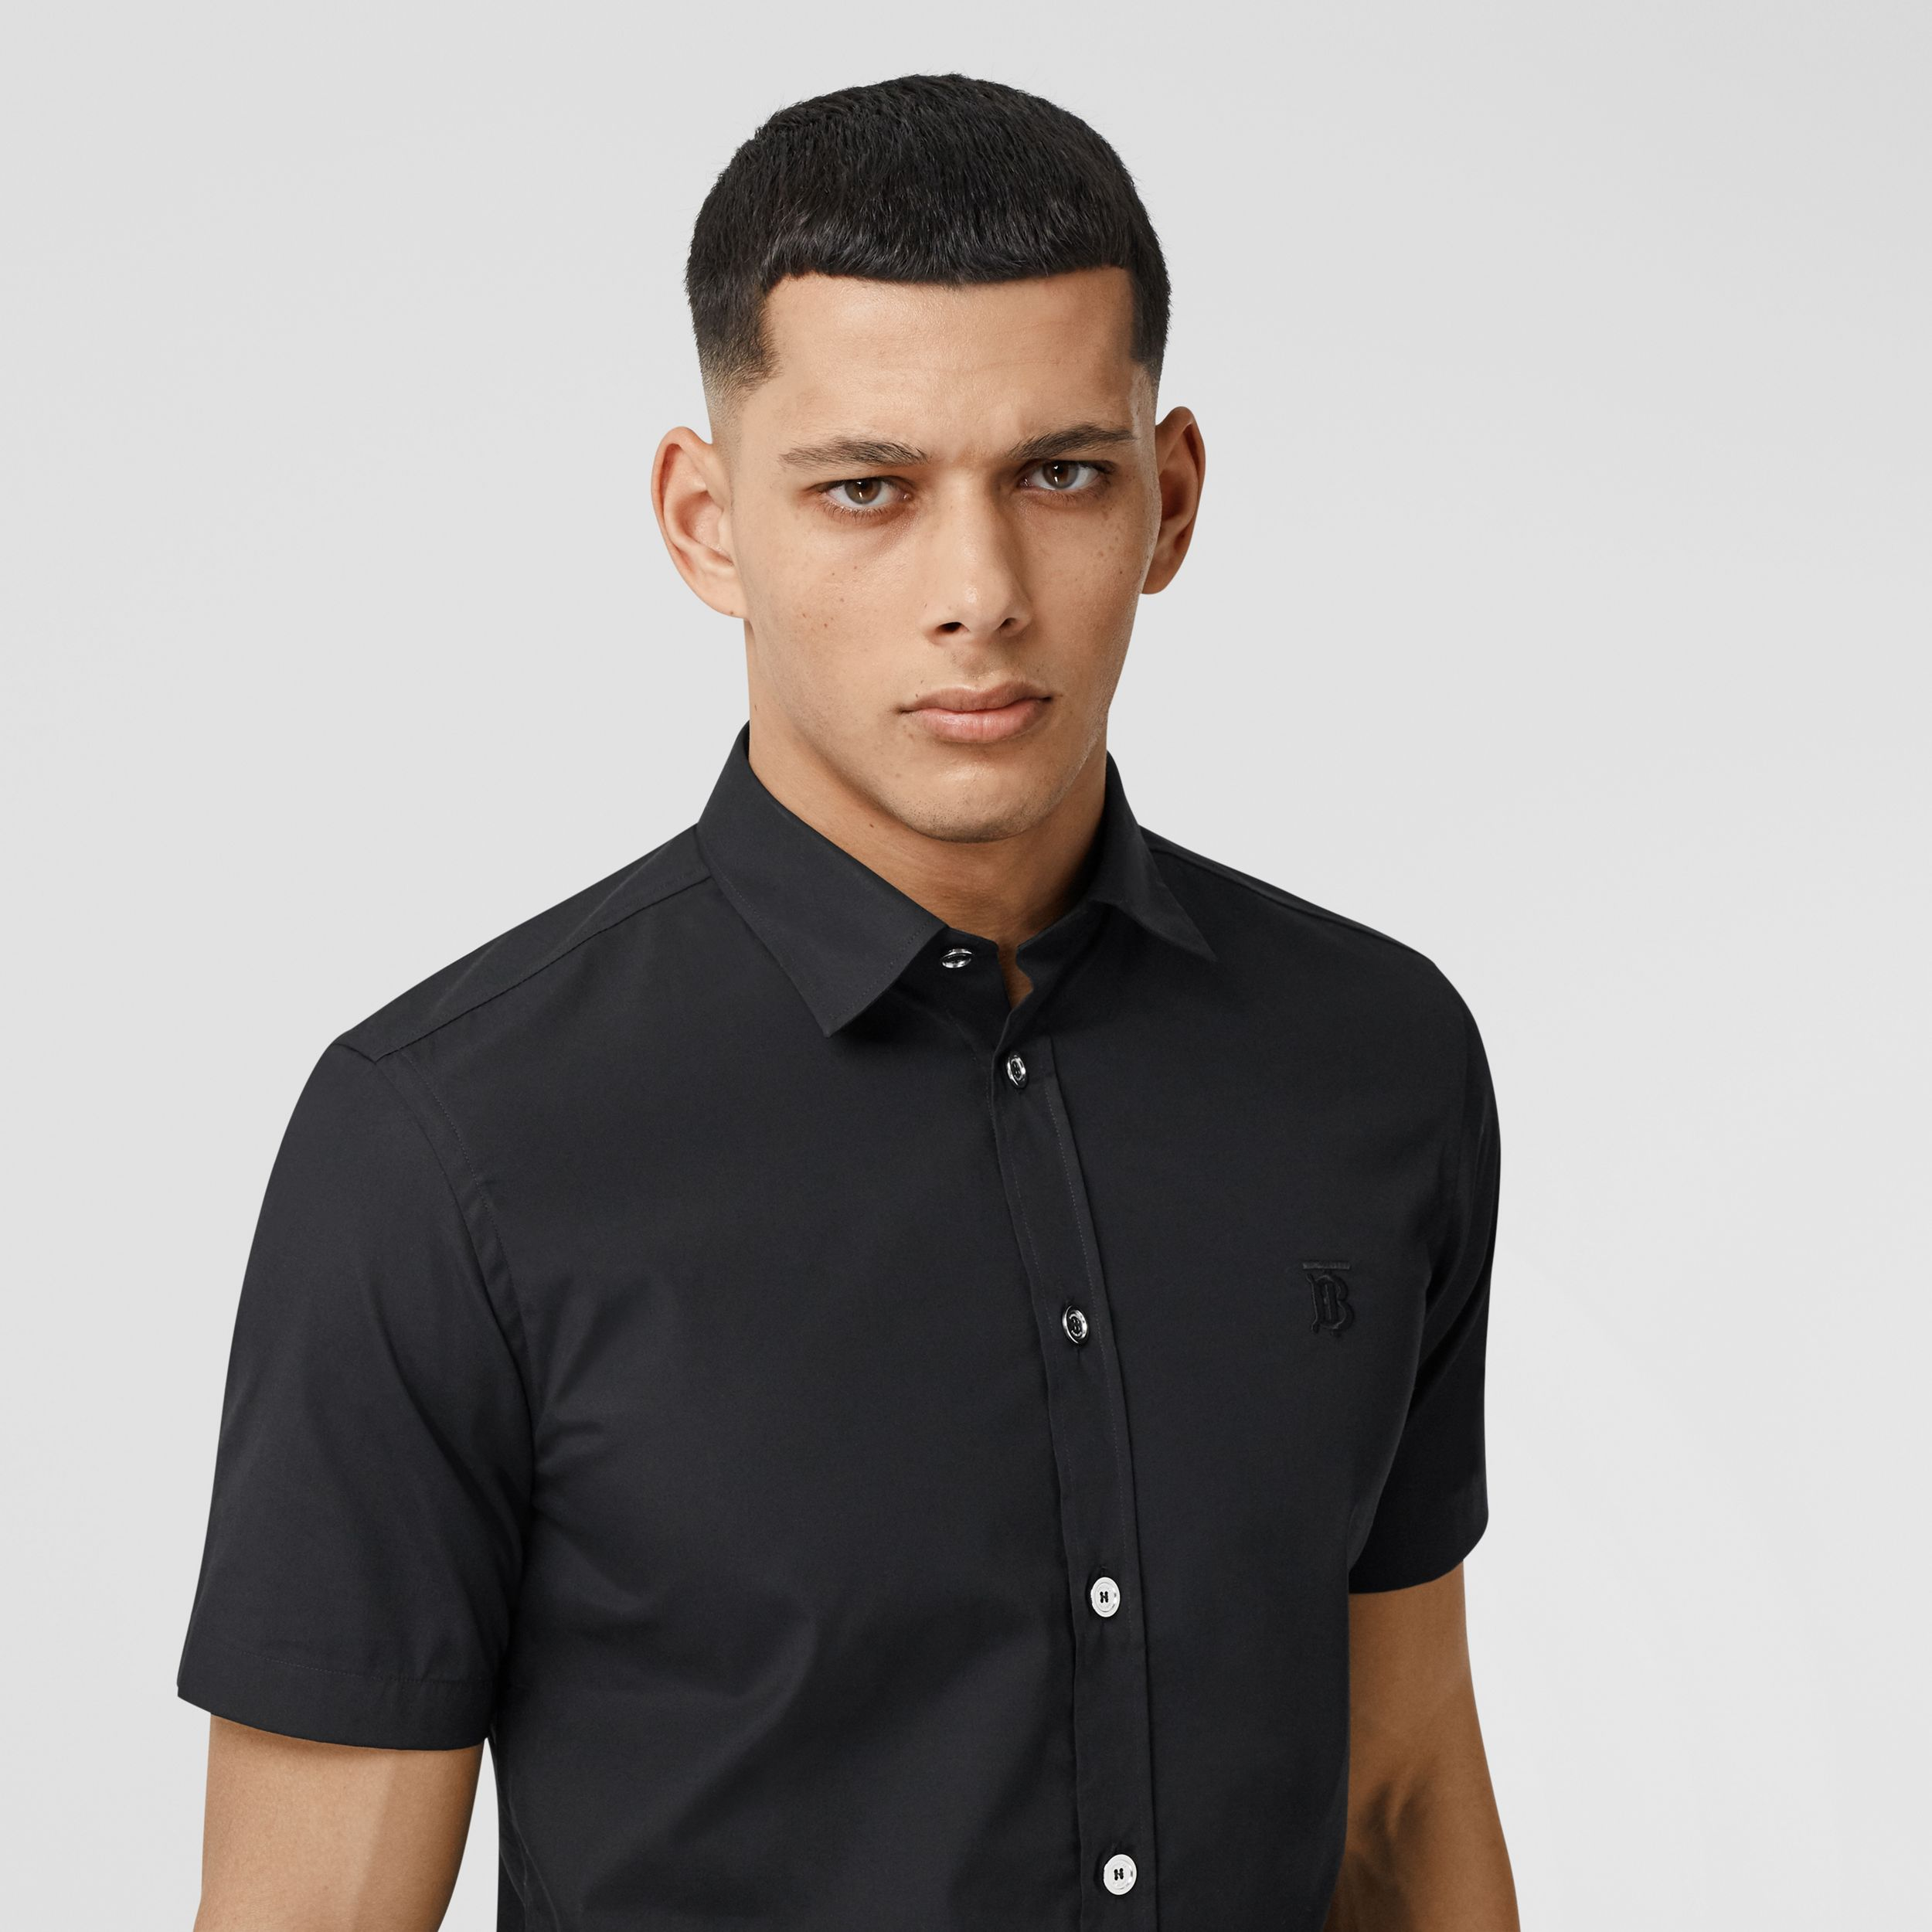 Short-sleeve Monogram Motif Stretch Cotton Shirt in Black - Men | Burberry - 2